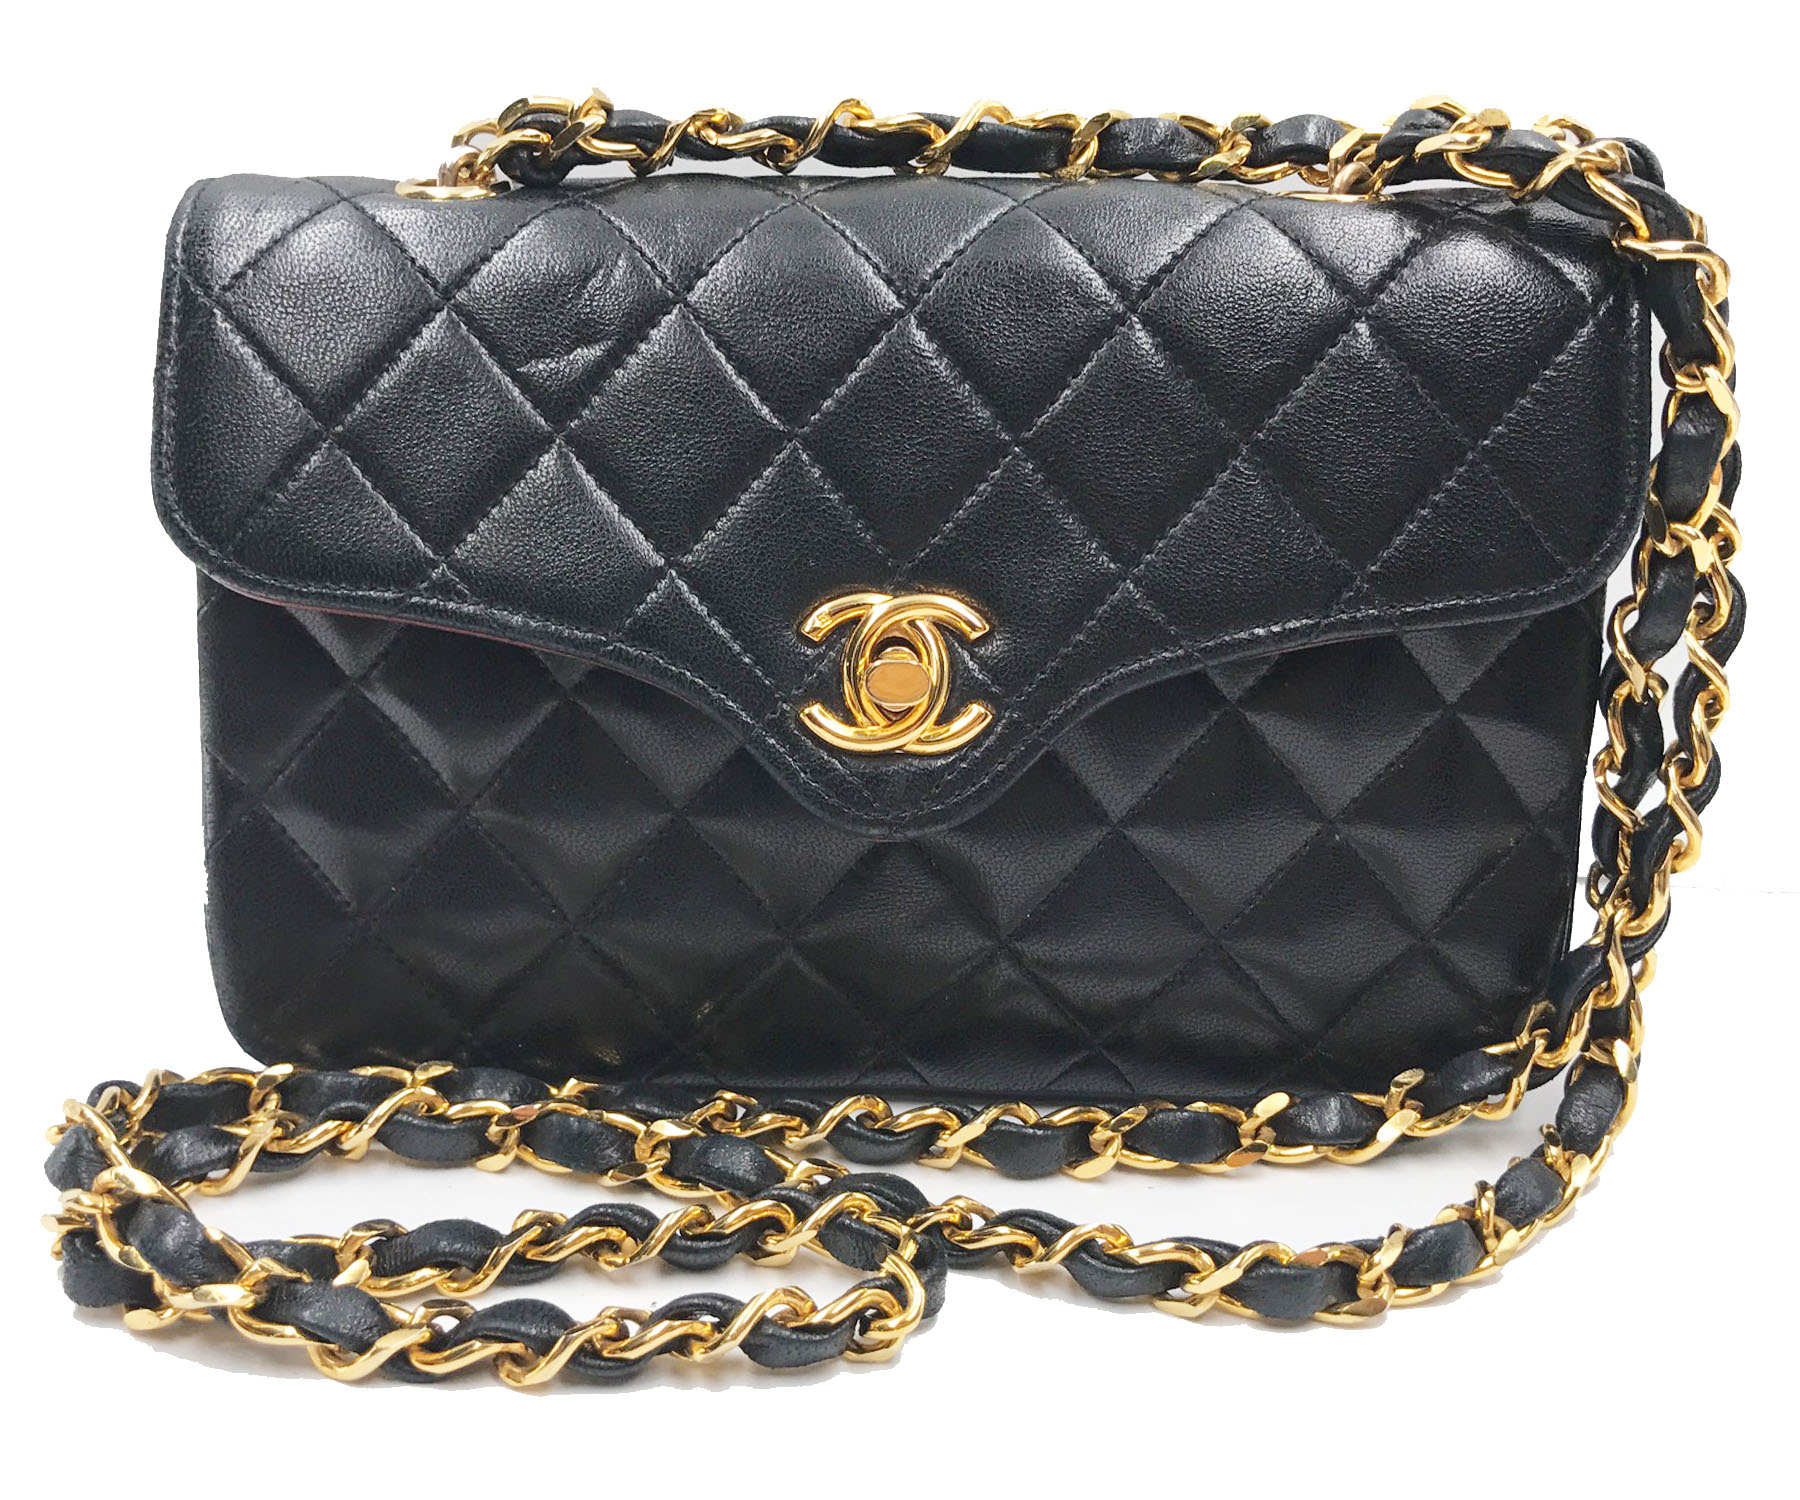 40ab5a34320e Vintage Small Crossbody Chanel Black Purse | Stanford Center for ...